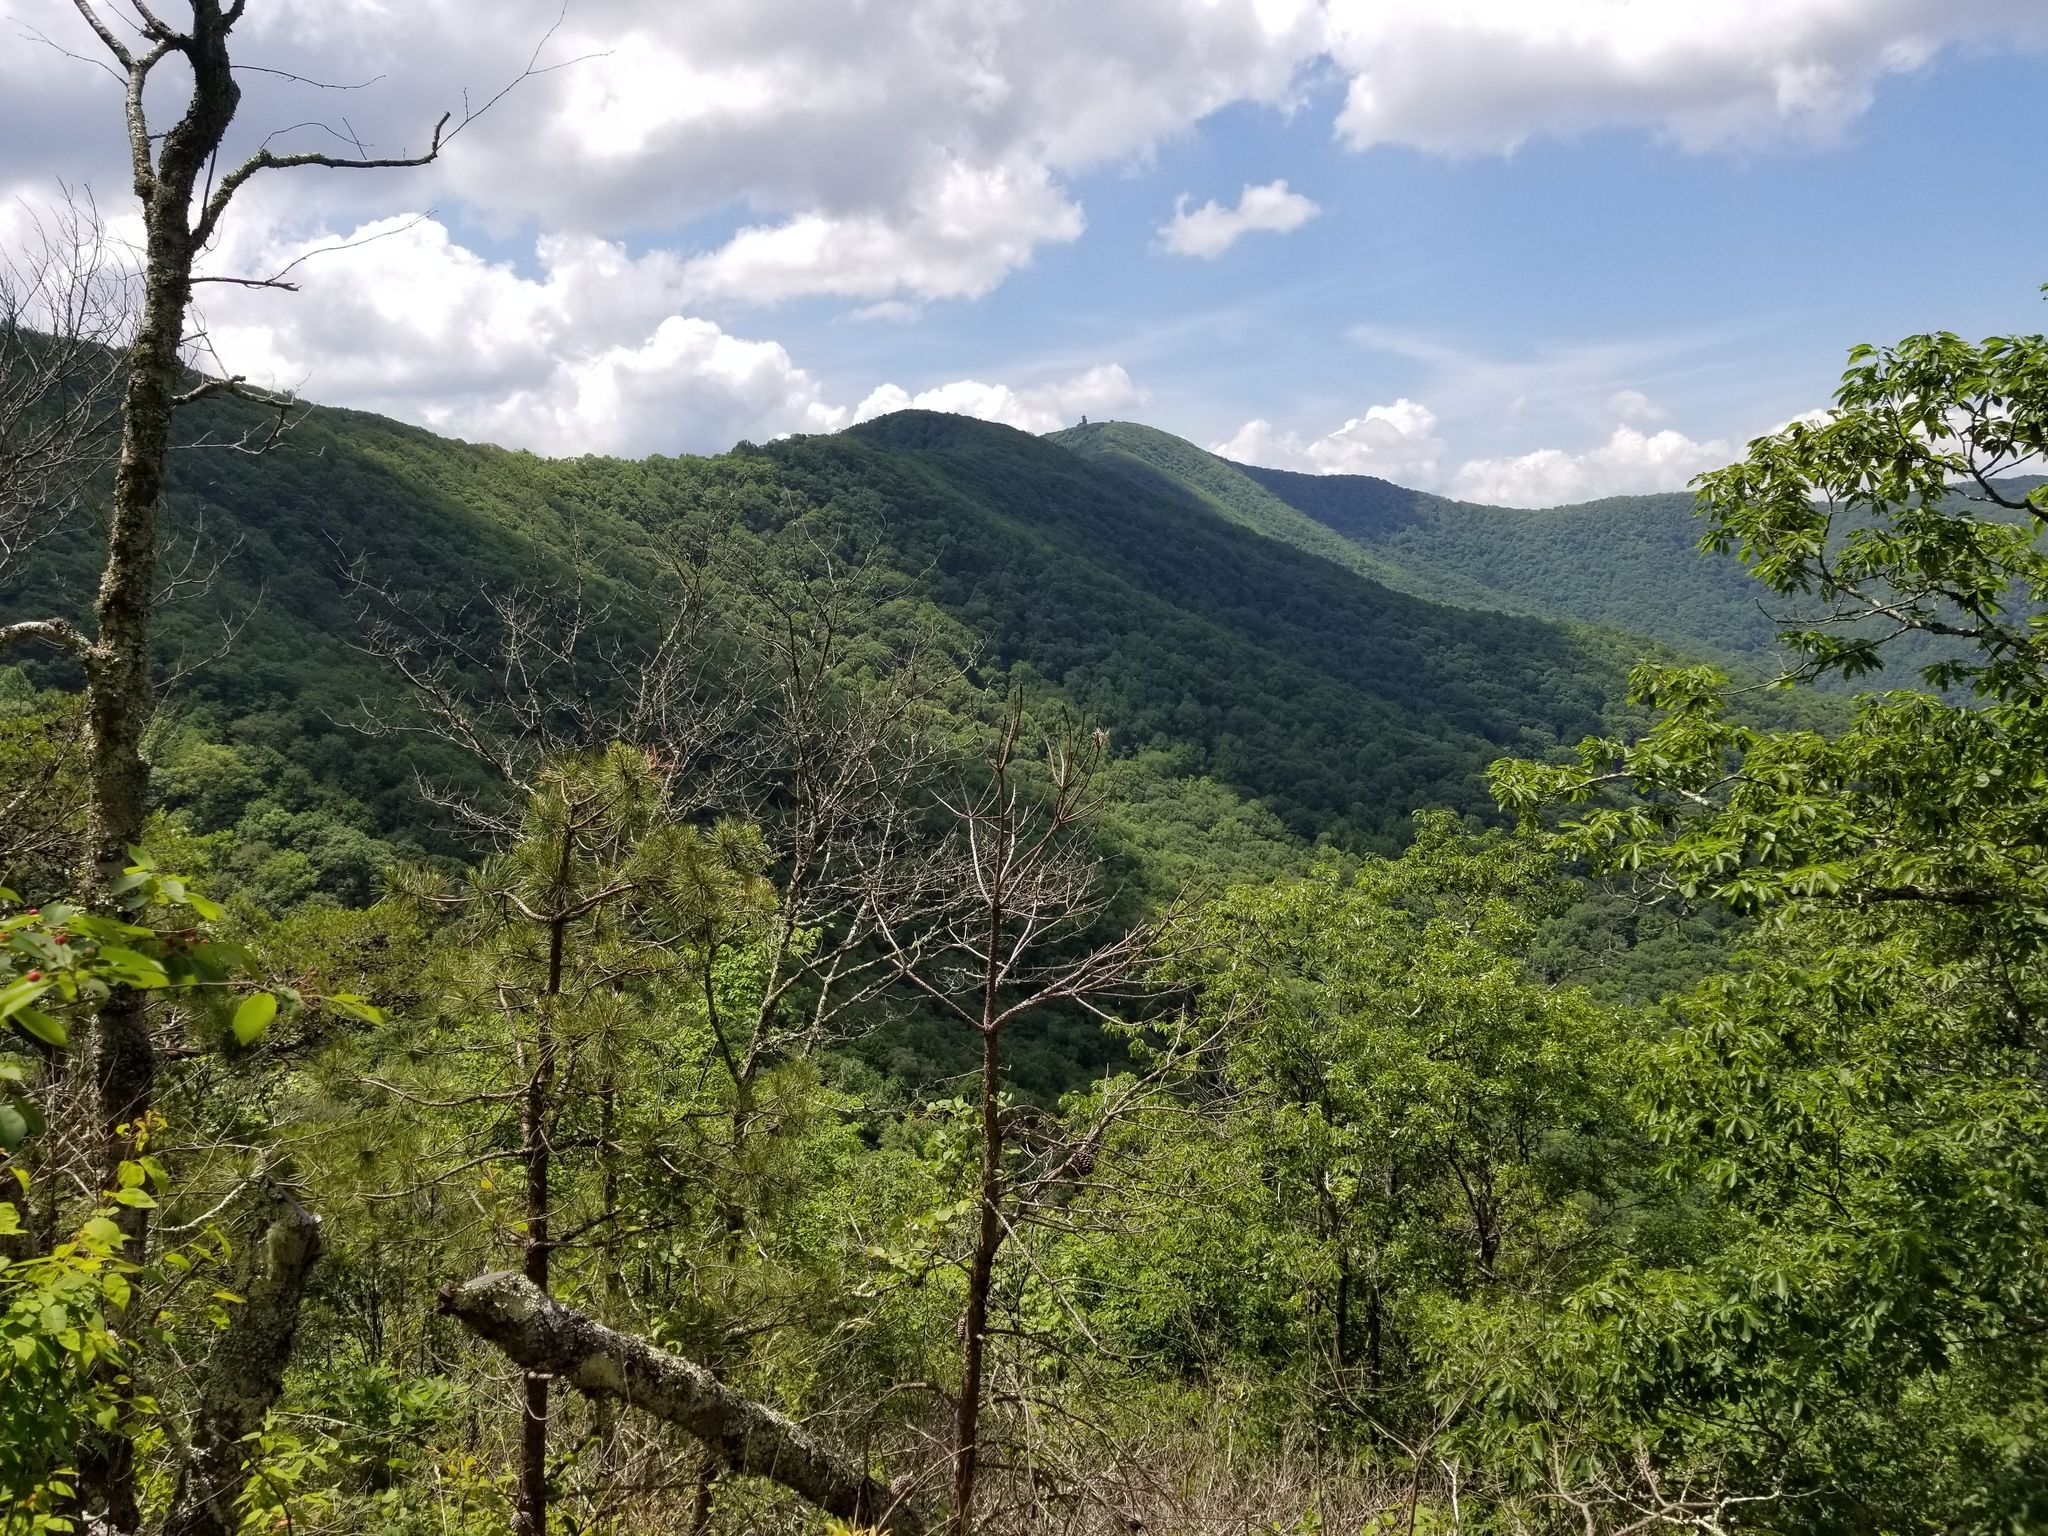 Hike The Historic Wagon Trail Surrounded By Lush Forest In Georgia's Brasstown Wilderness